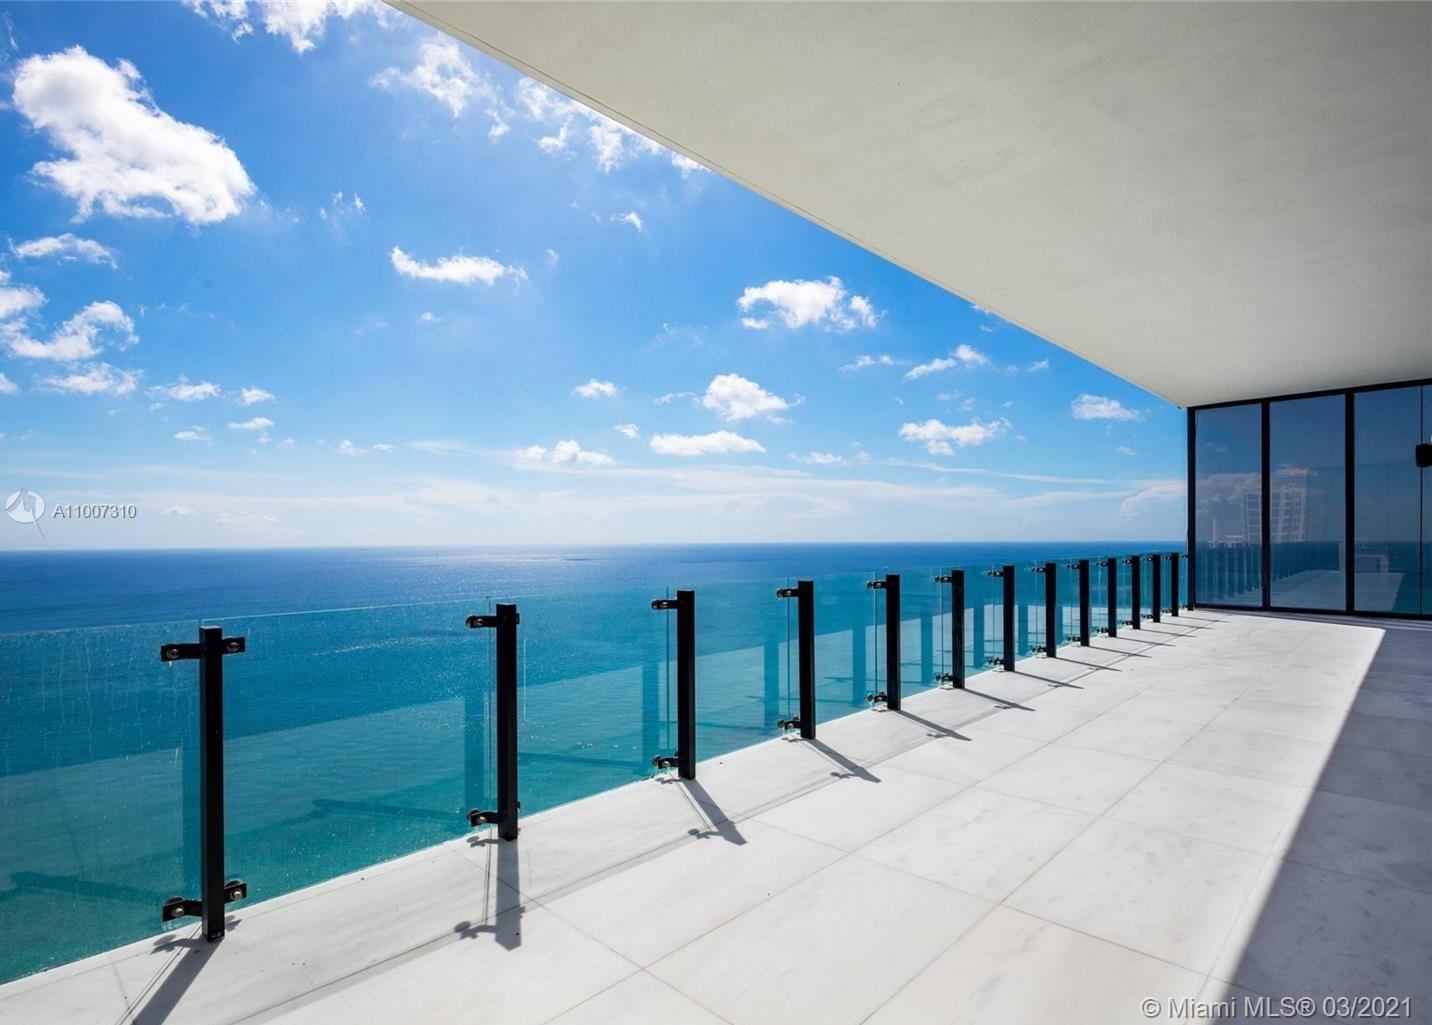 Muse is one of the most exclusive boutique buildings in Miami, and certainly the most exclusive in Sunny Isles Beach. This high floor unit features 3 amazing bedrooms with their own bathrooms and closets. The master bedroom has a coffee area, spa like bath and an amazing closet. There is a den that can be converted into a 4th bedroom, an office or play room. The kitchen has fully integrated Wolf, Bosch and Subzero appliances, including kitchen maker and wine cellar. Deep and wide balcony with complete summer kitchen, providing 180 degrees of direct ocean views. Huge living and dining rooms with 11' ceilings, allowing a lot of natural light to every corner of this condo. Come and see for yourself. Easy to show. Won't last long in the market!!! Seller will NOT consider lease!